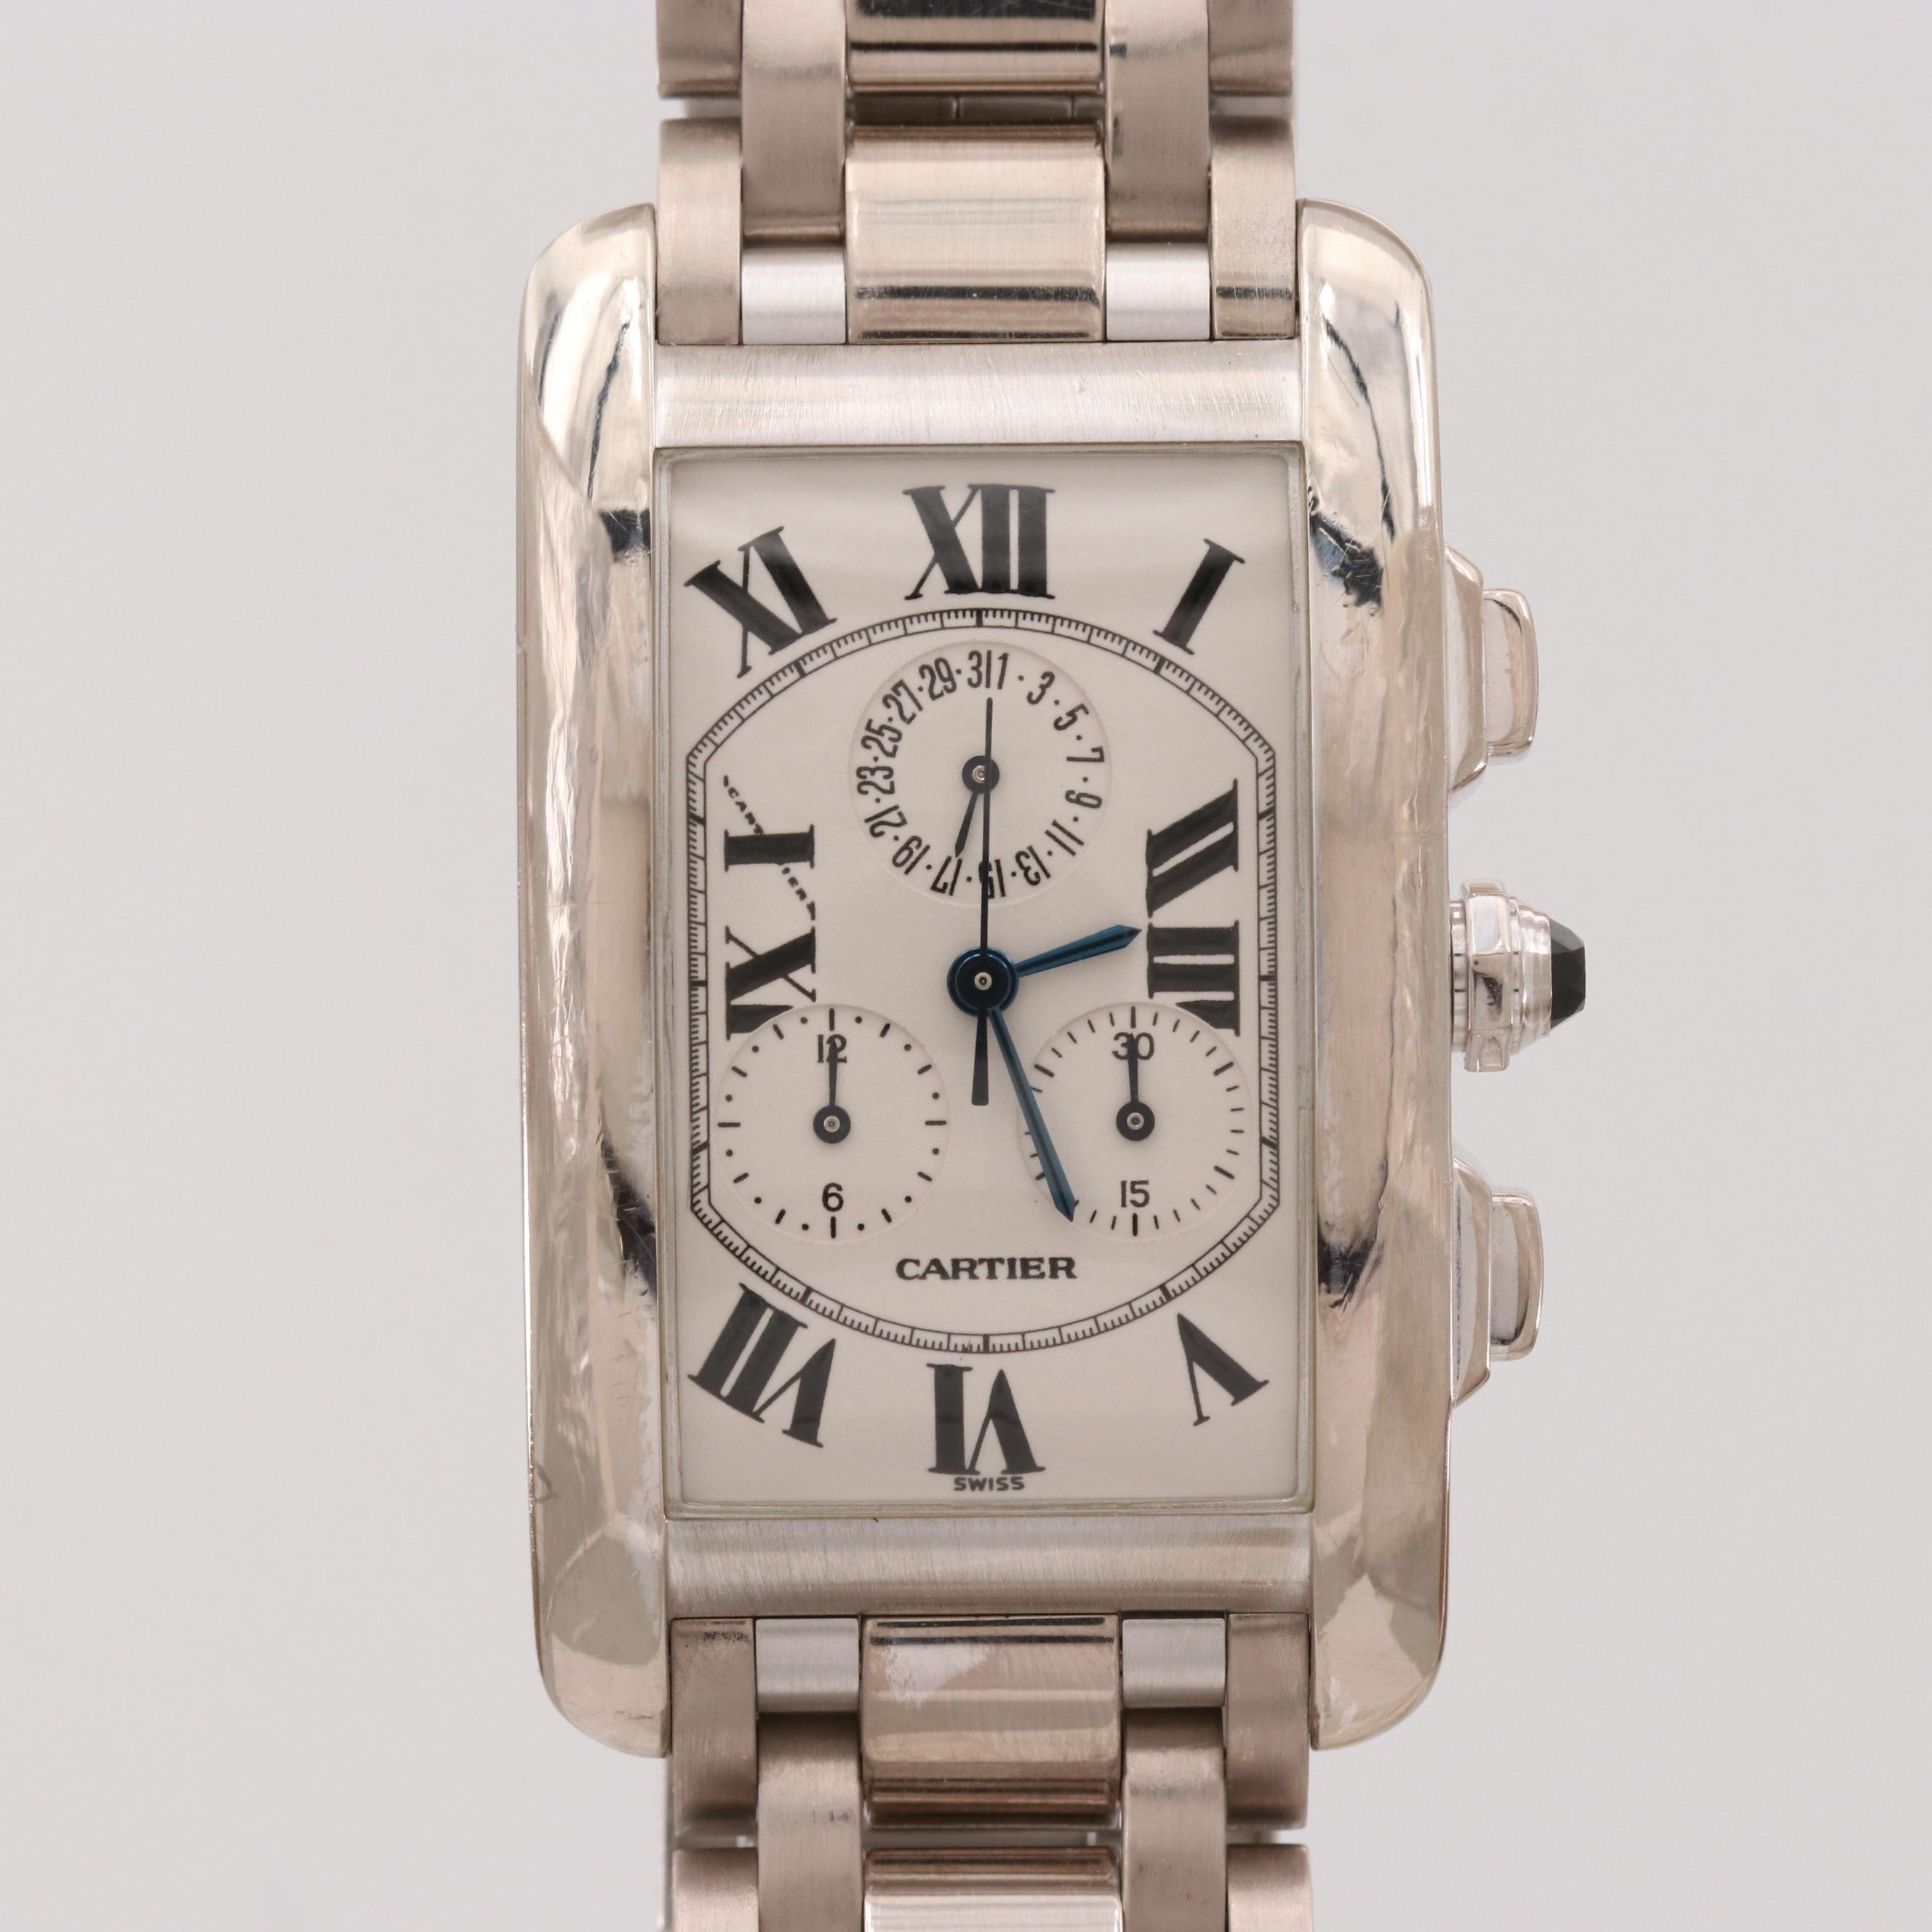 Cartier Tank Americaine Chronoflex 18K White Gold Quartz Wristwatch